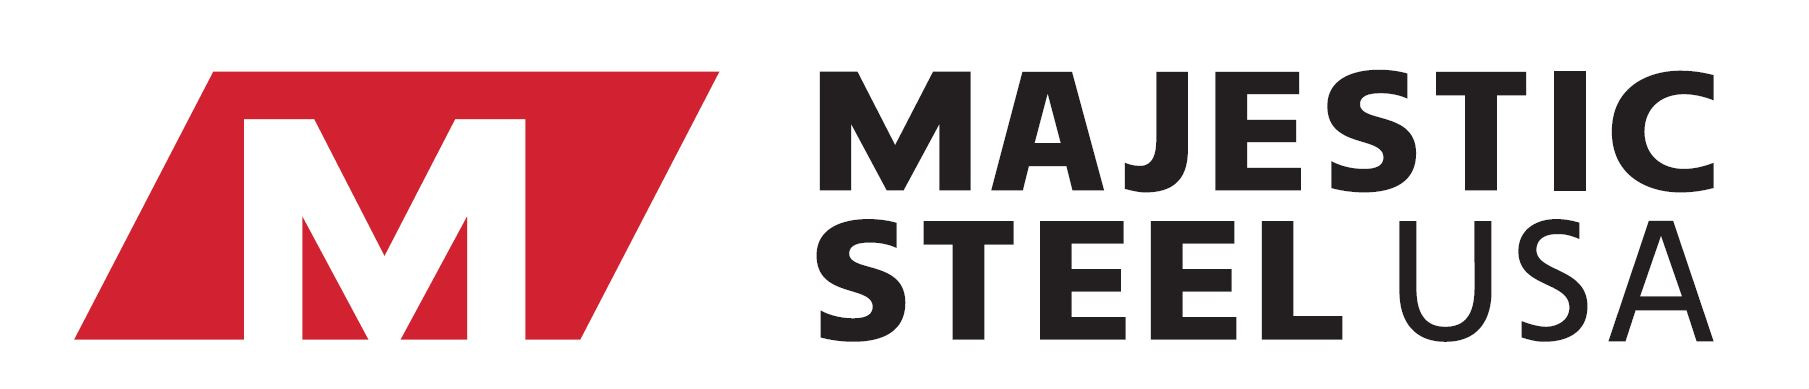 MAJESTICSTEELUSA_LOCKUP_STACKED.JPG